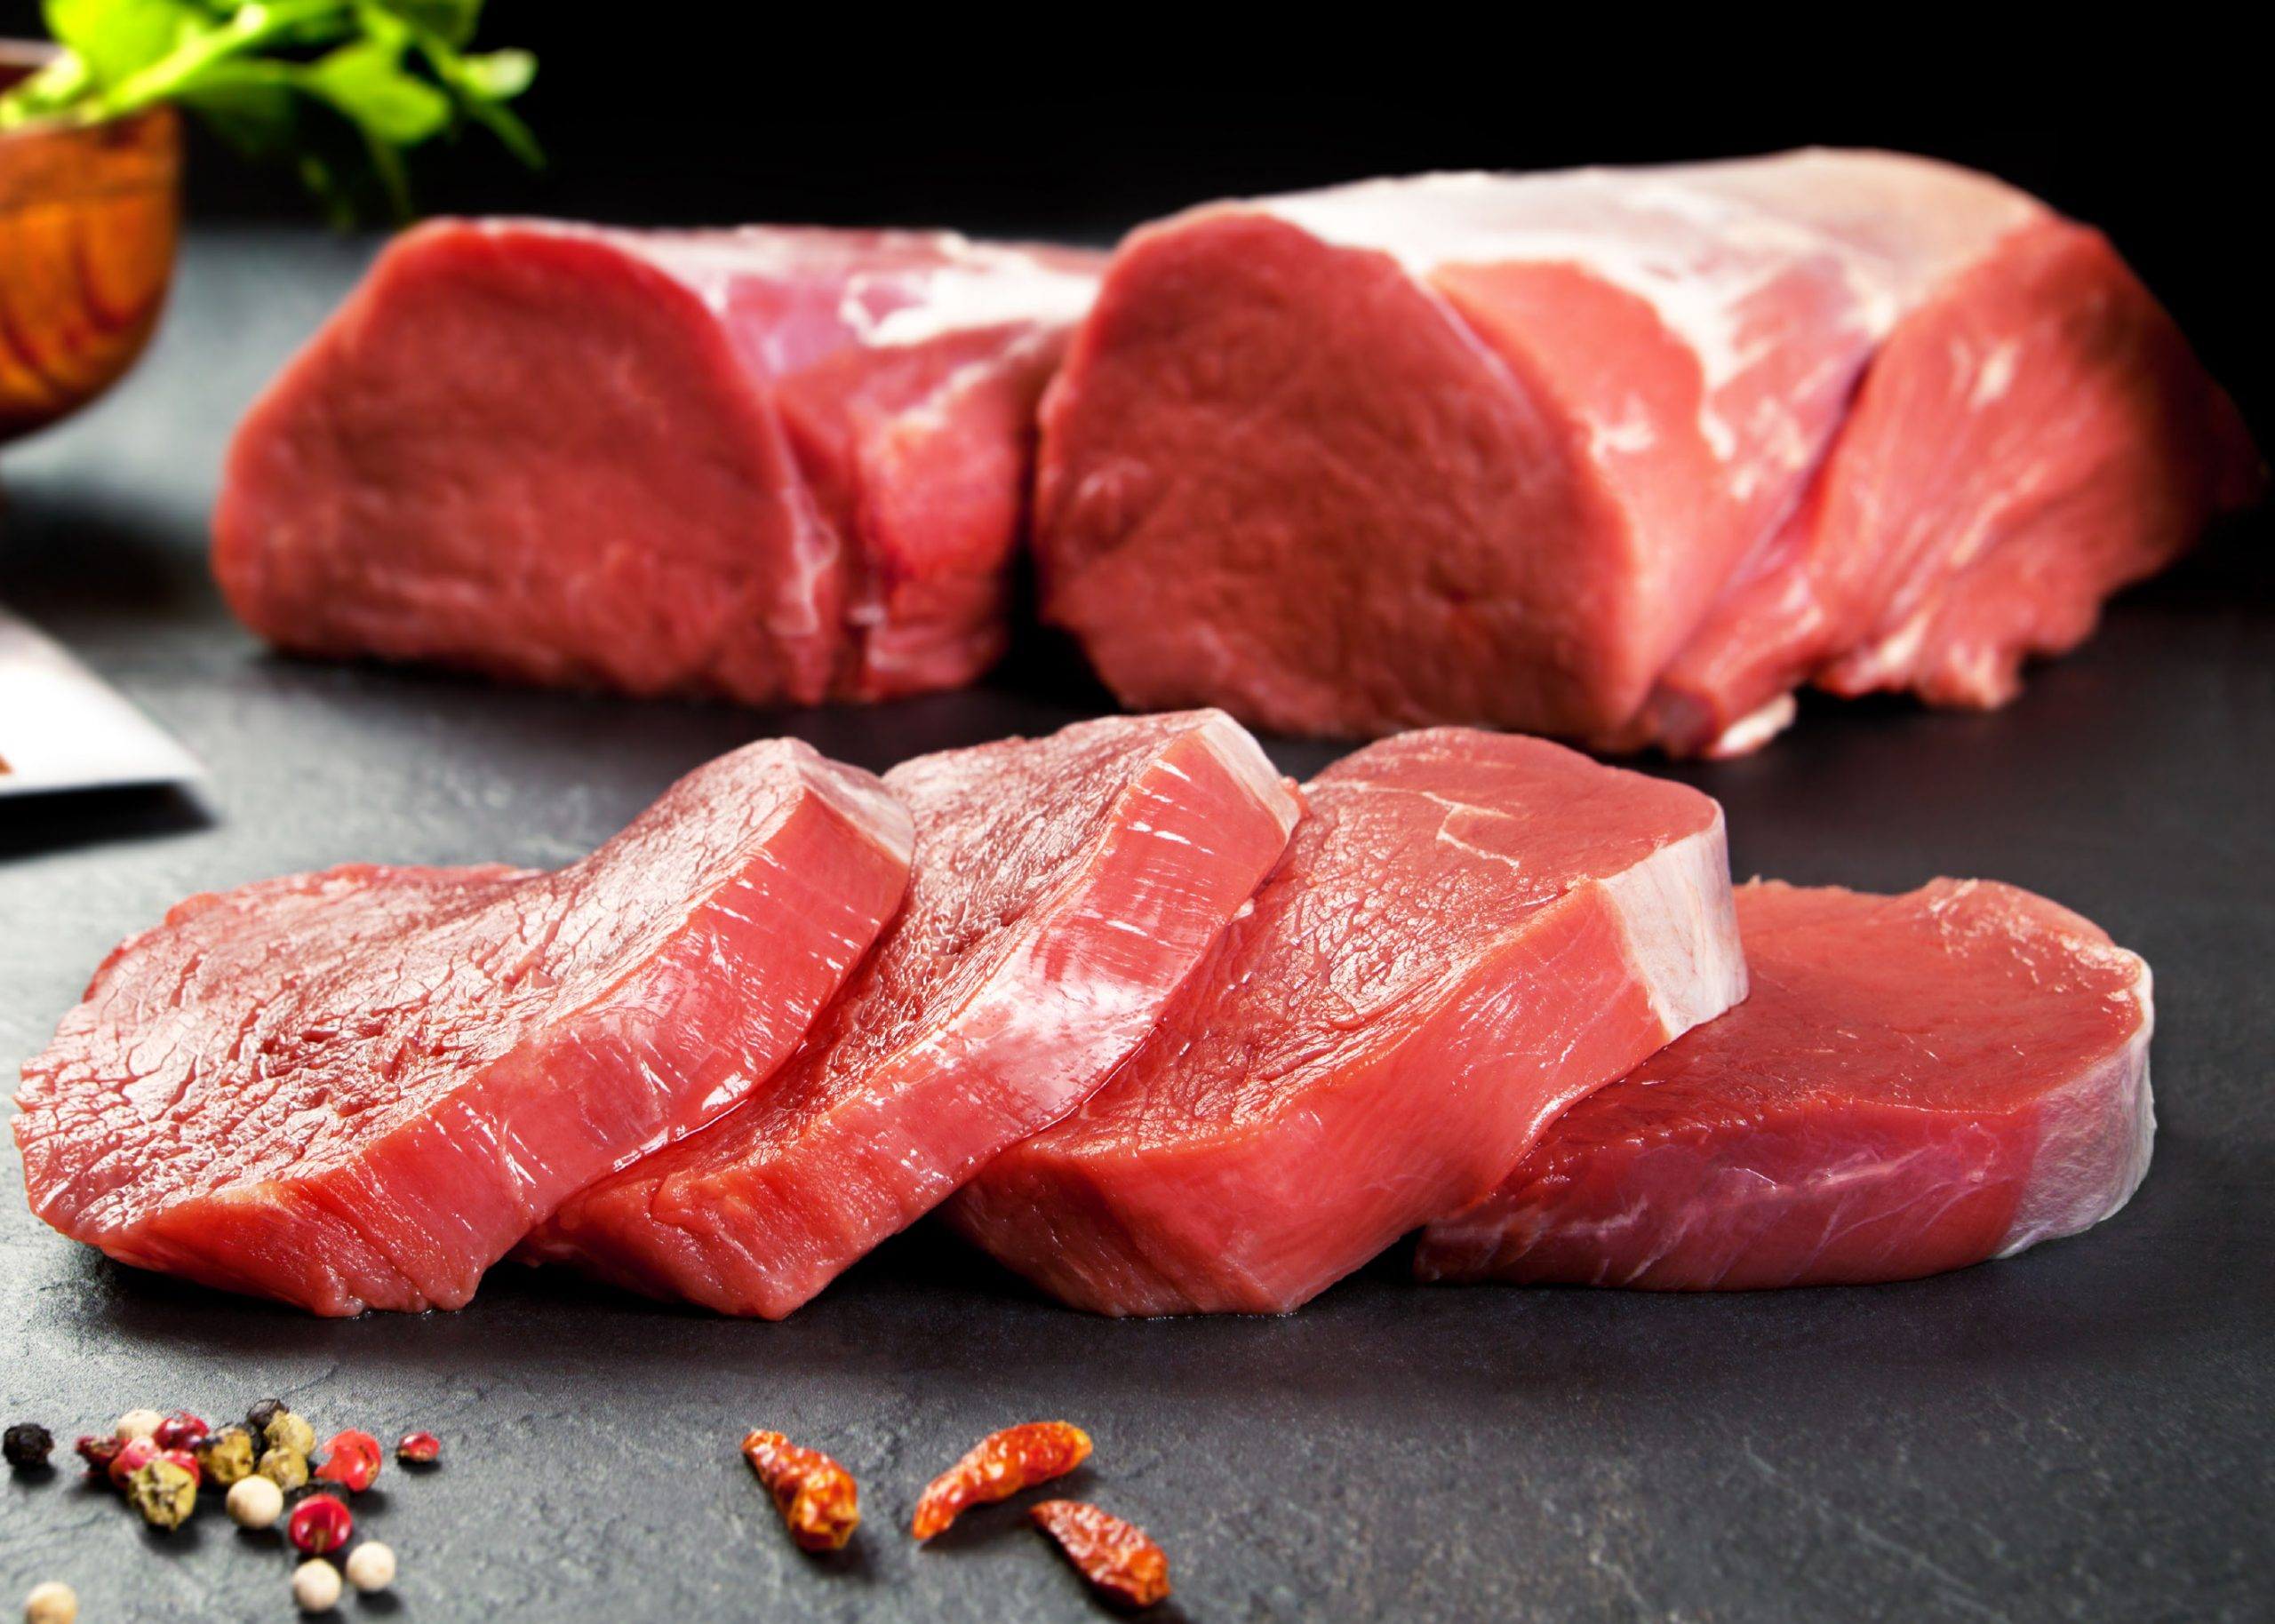 10 Foods That Give Dogs Gas - Too much red meat